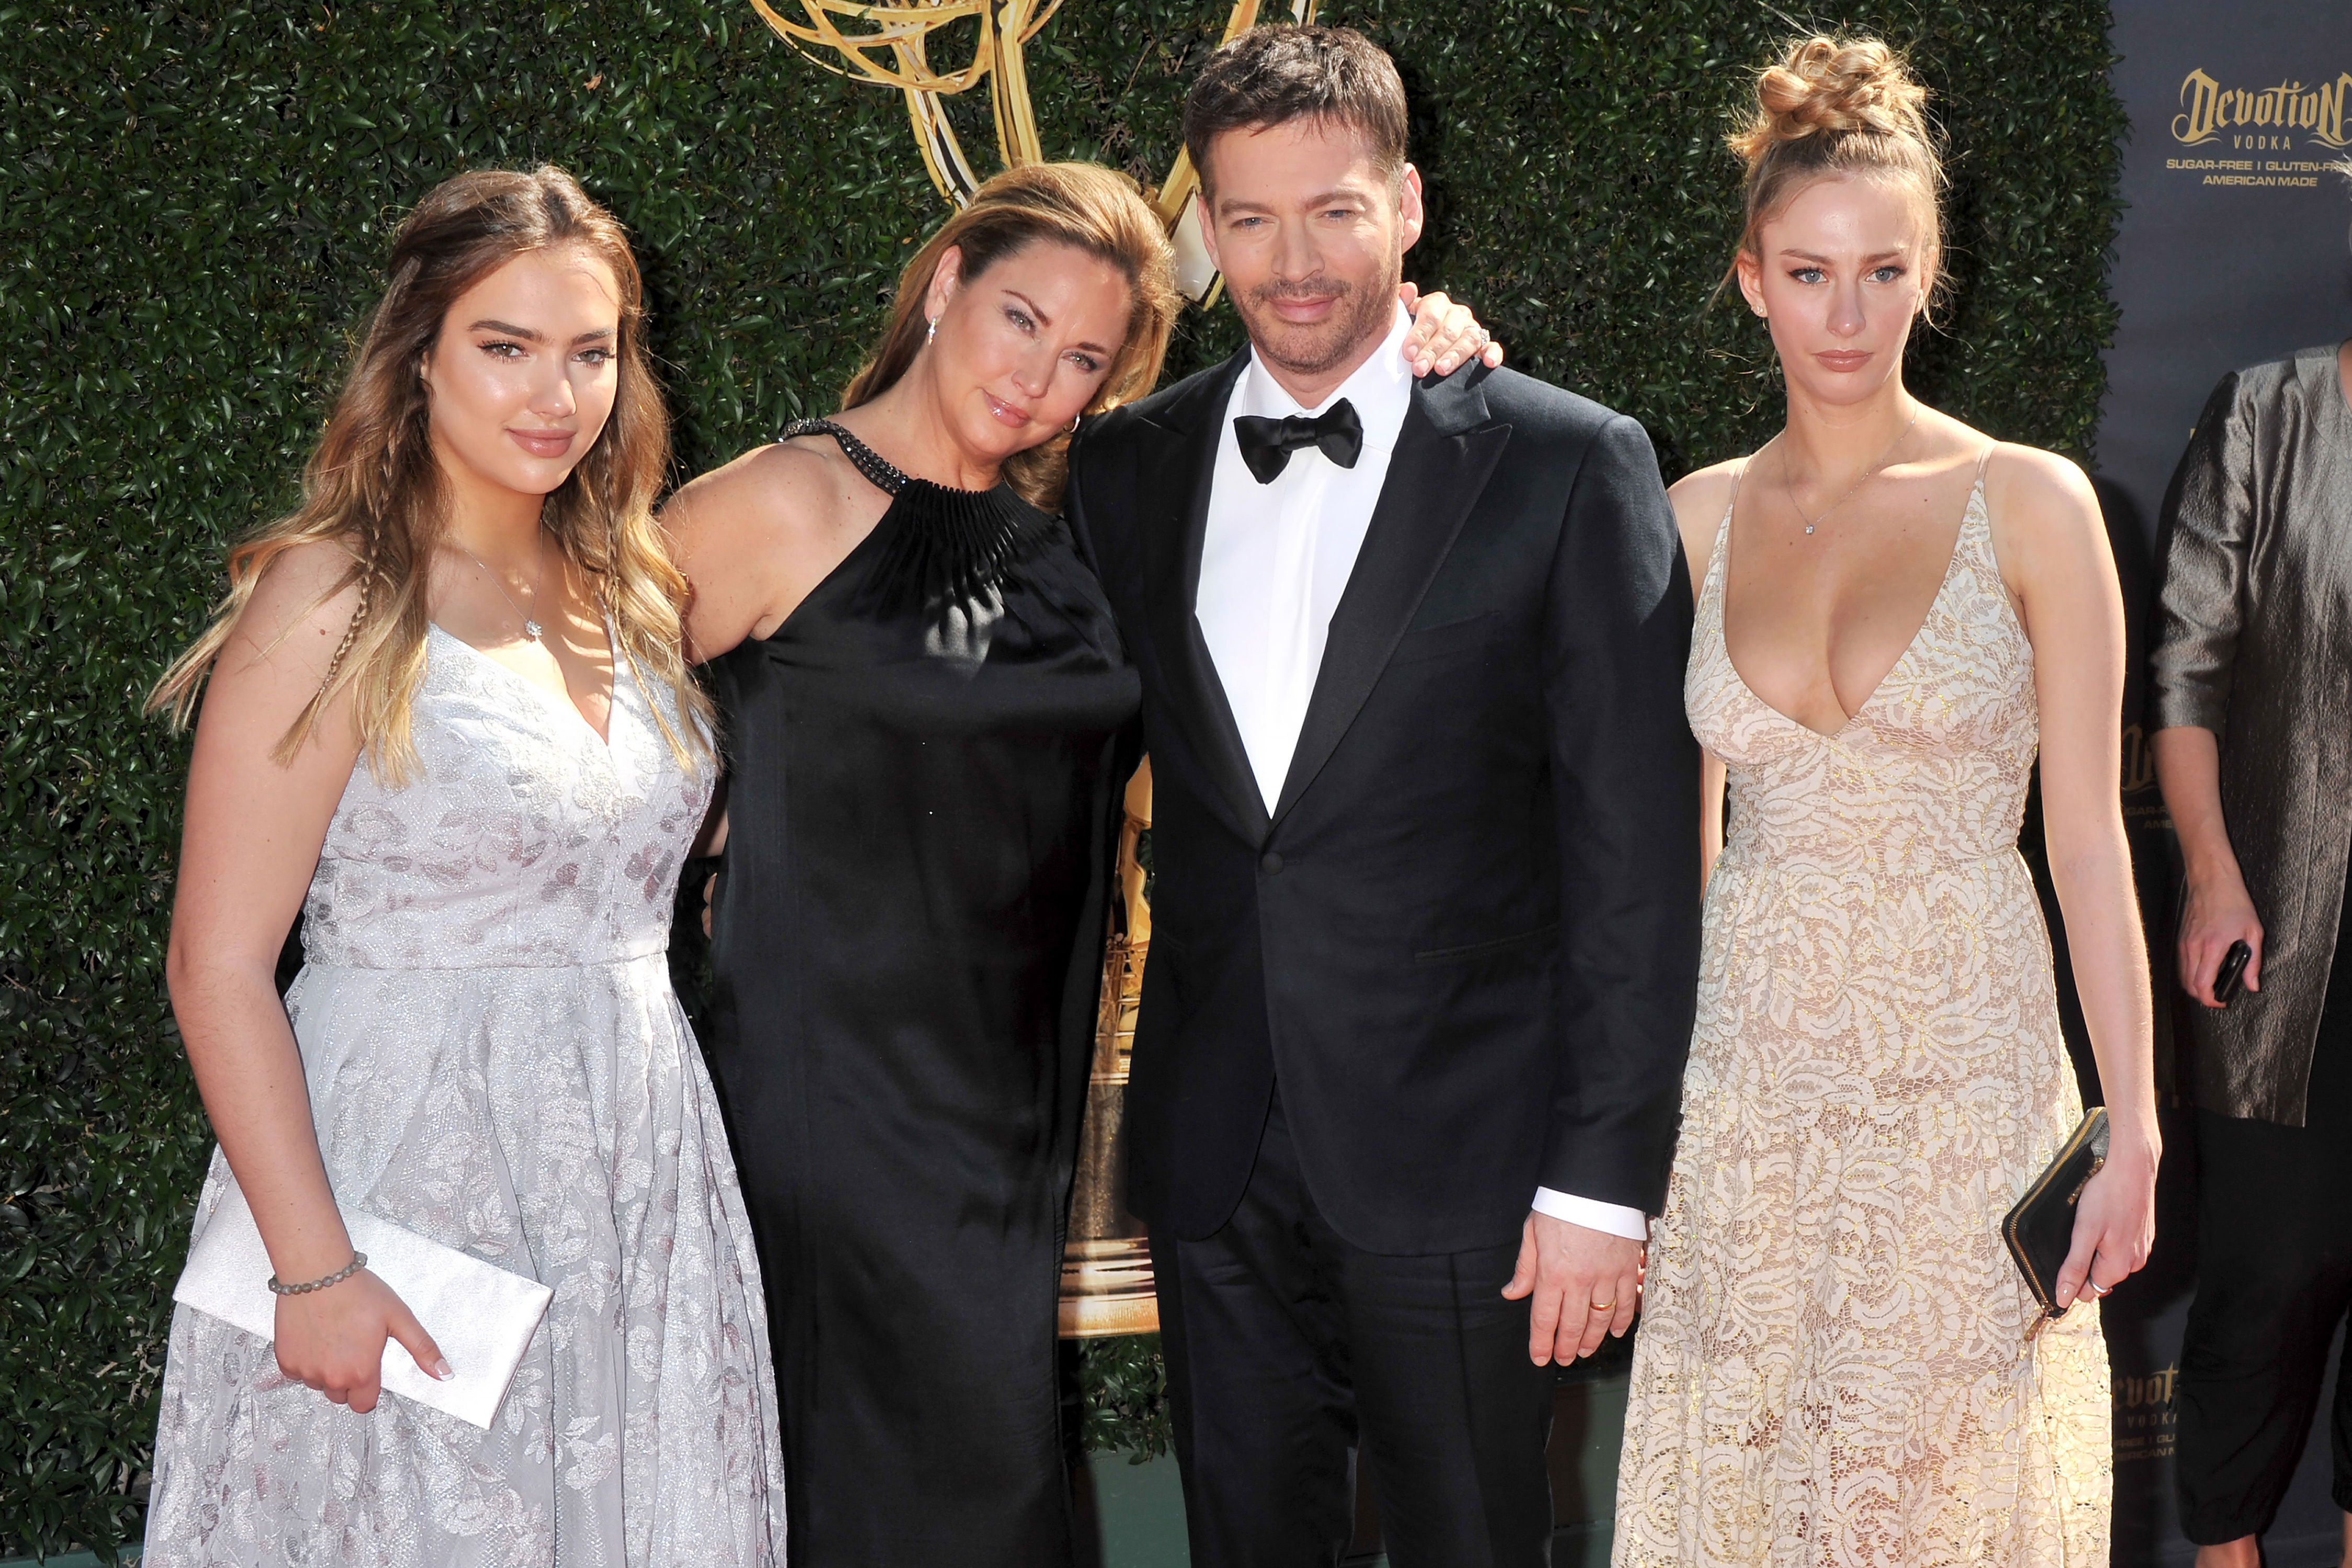 WATCH: Harry Connick Jr. Reveals Wife's Secret Five-Year Battle With Breast Cancer